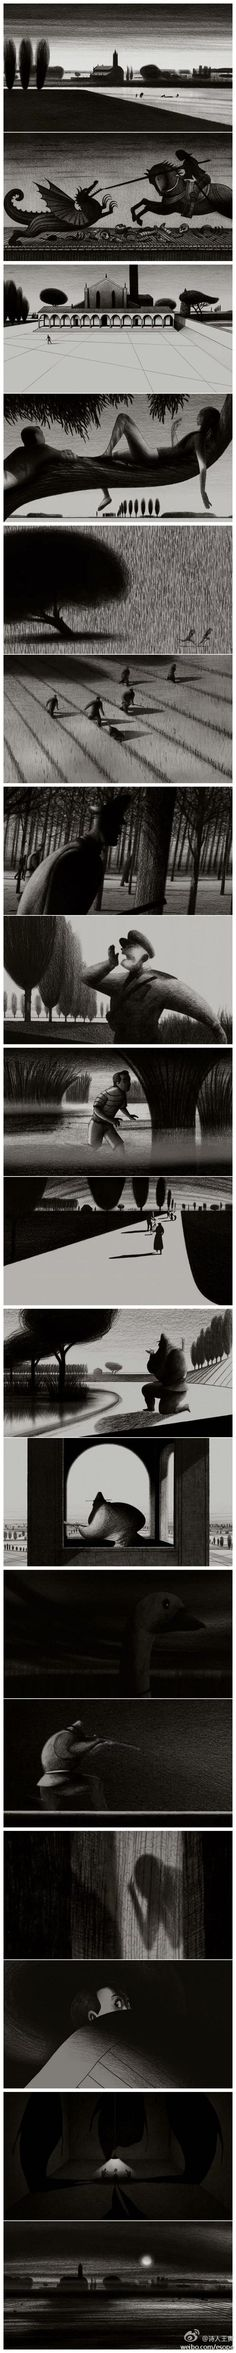 Lorenzo Mattotti, fear of the dark: Storyboard, Black And White Drawing, Black And White Illustration, Lorenzo Mattotti, Fear Of The Dark, Bd Comics, Arte Popular, Photoshop, Comic Artist